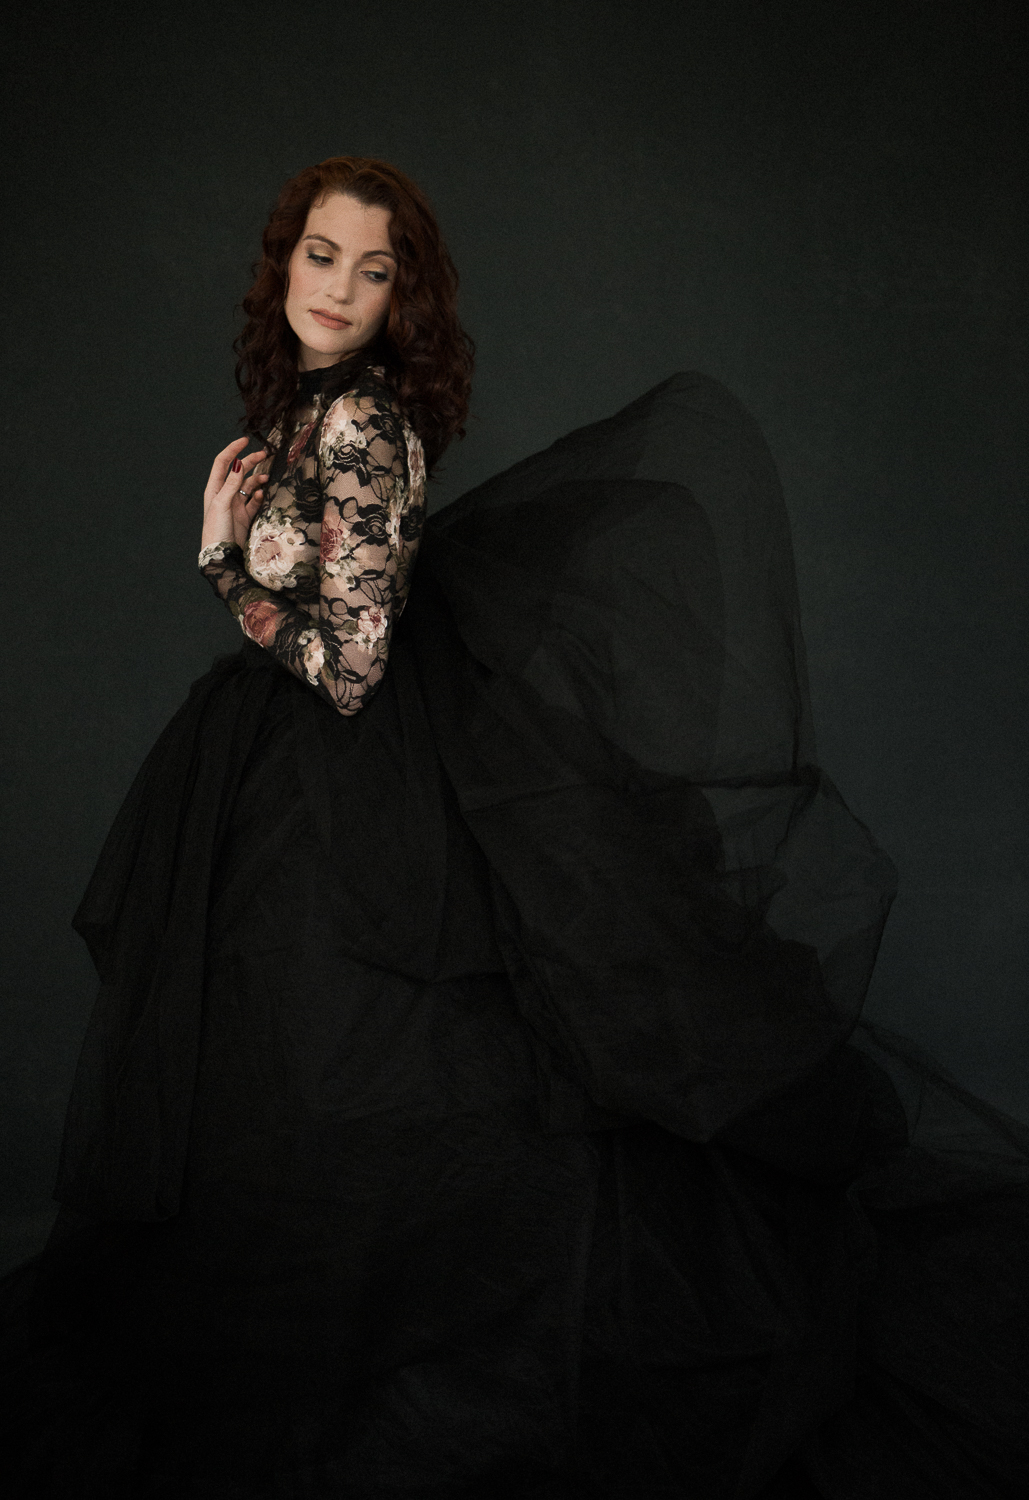 Dramatic portrait of a woman in a black tulle skirt